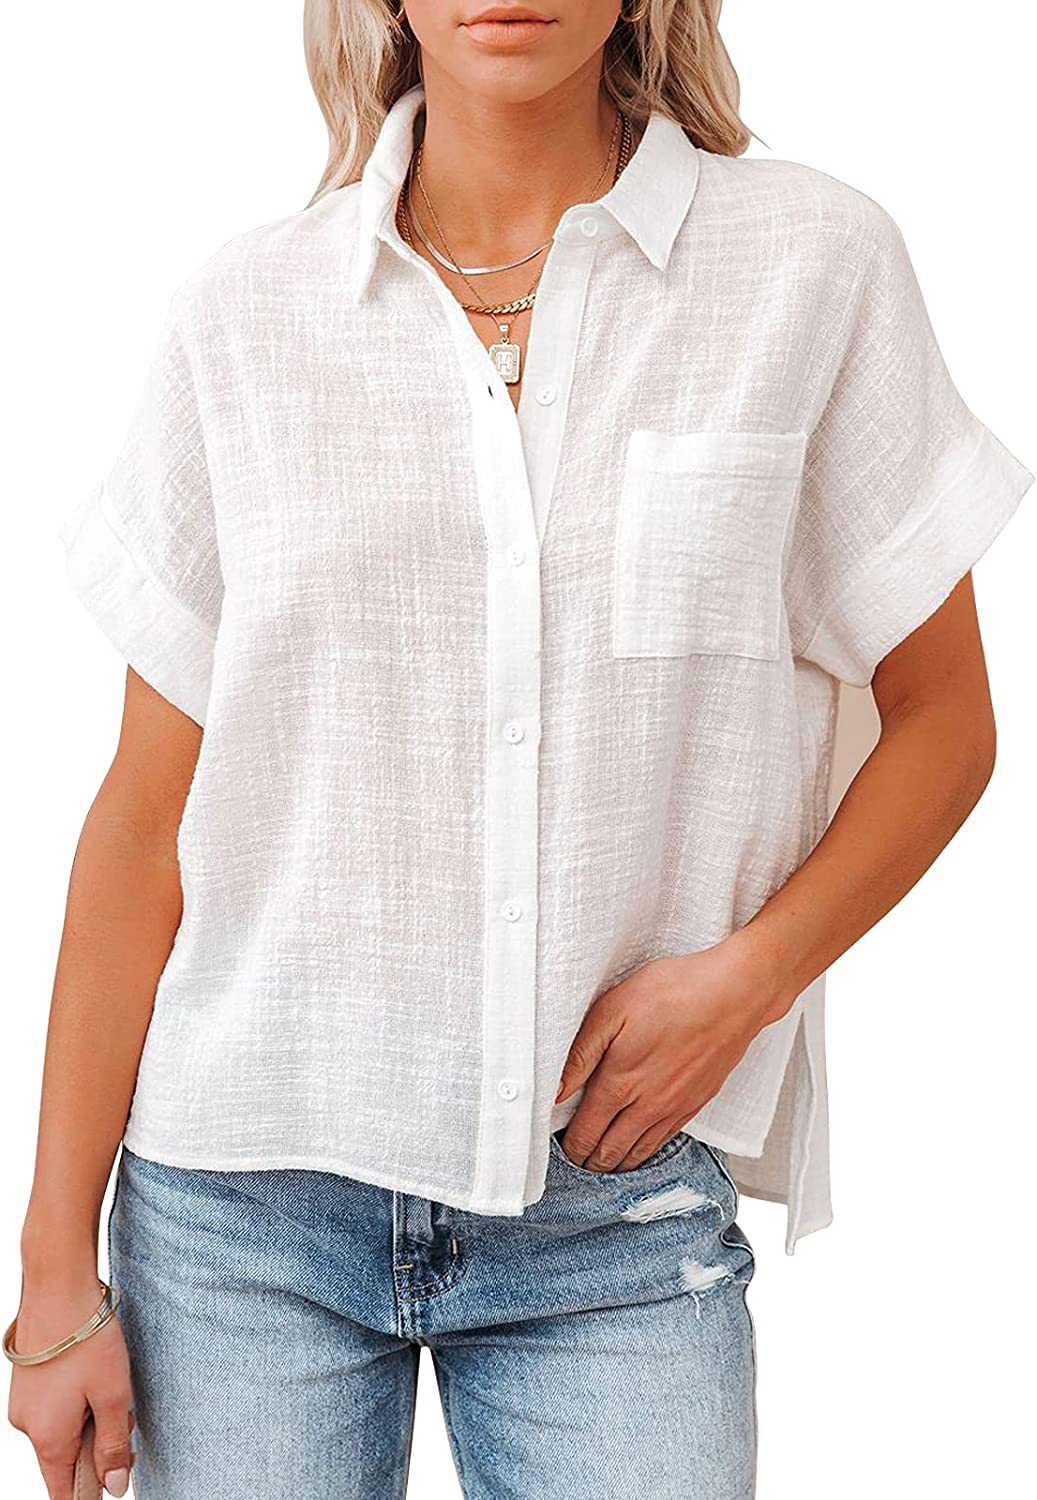 Womens Button Down V Neck Shirts Short Sleeve Cotton Linen Tops Loose Fit Casual Work Plain Blouses with Pocket S-3XL